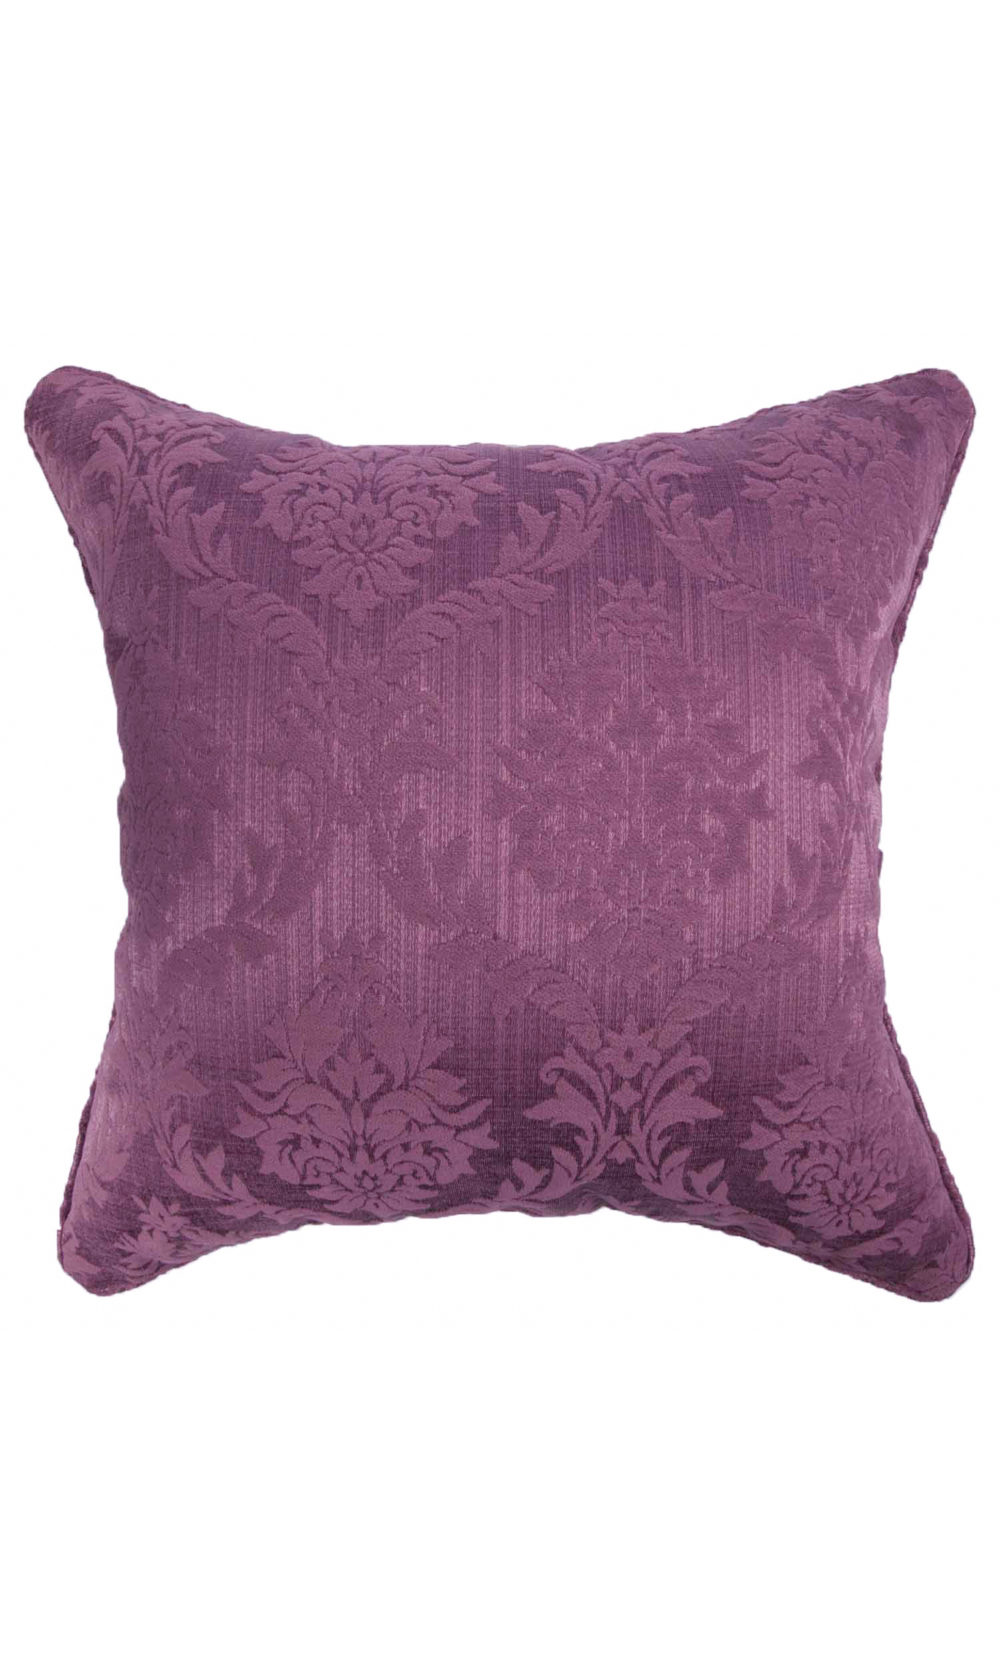 Floral Printed Budget Cushion Cover